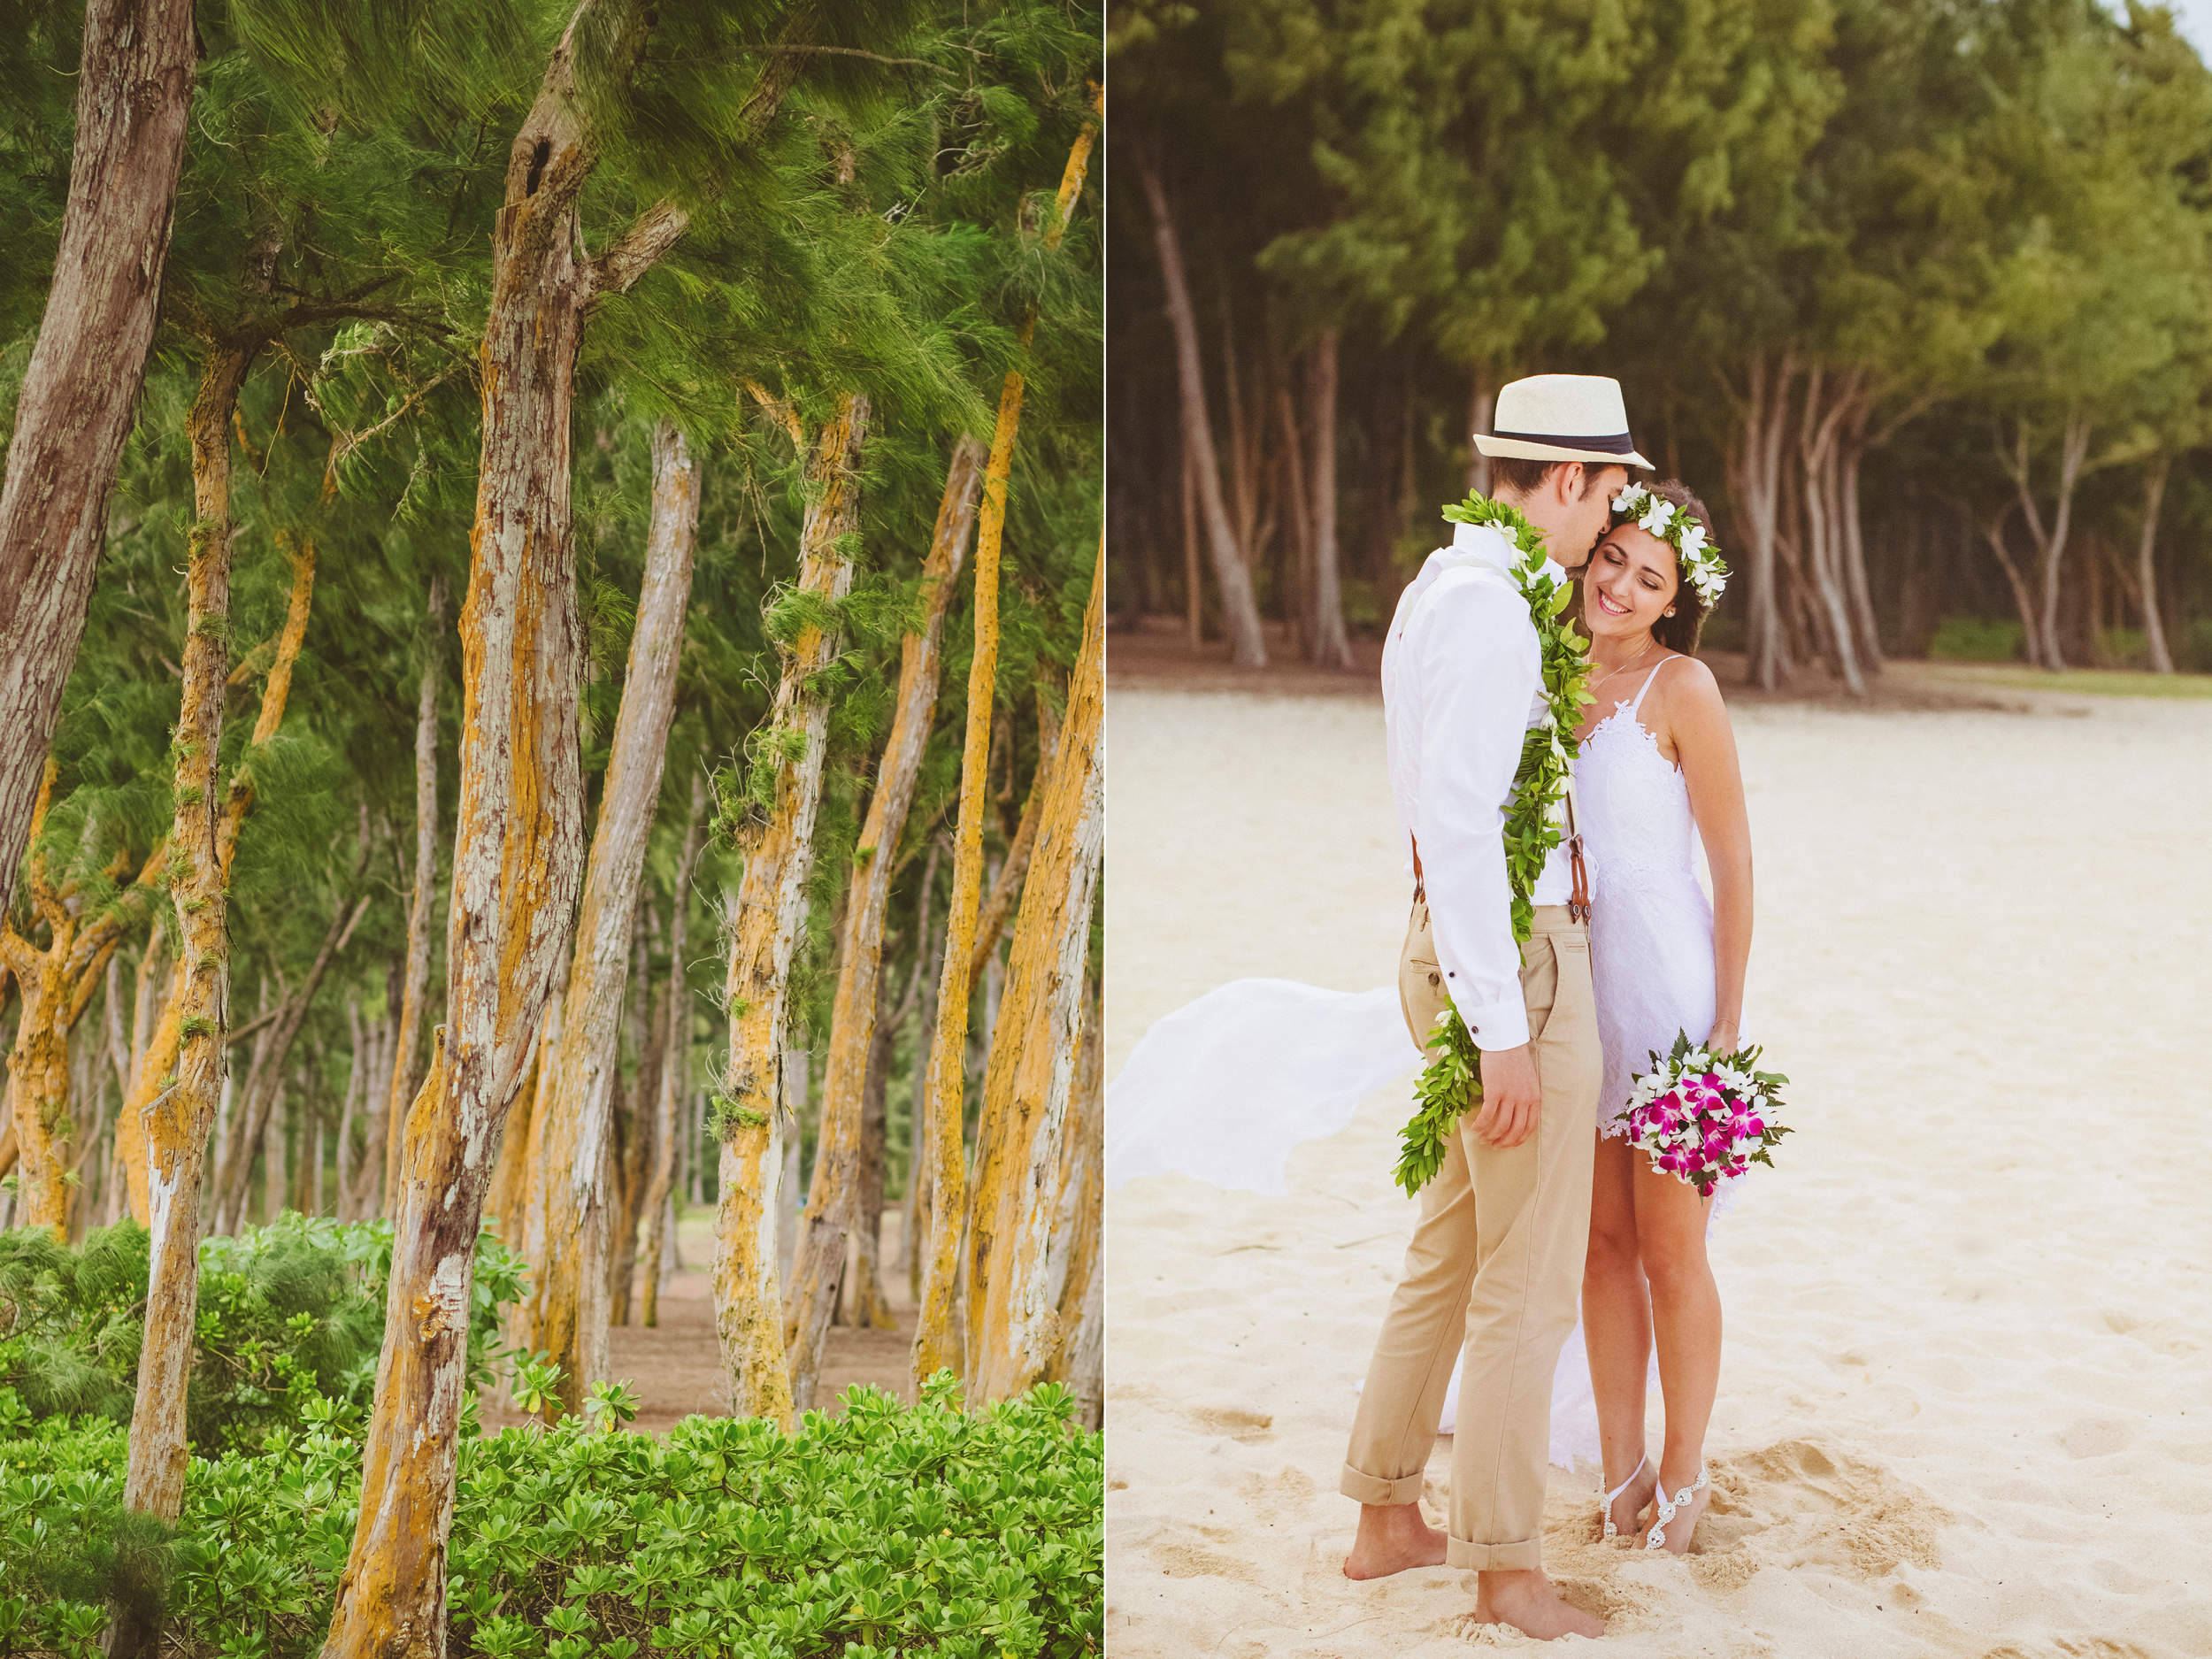 angie-diaz-photography-oahu-destination-wedding-8.jpg